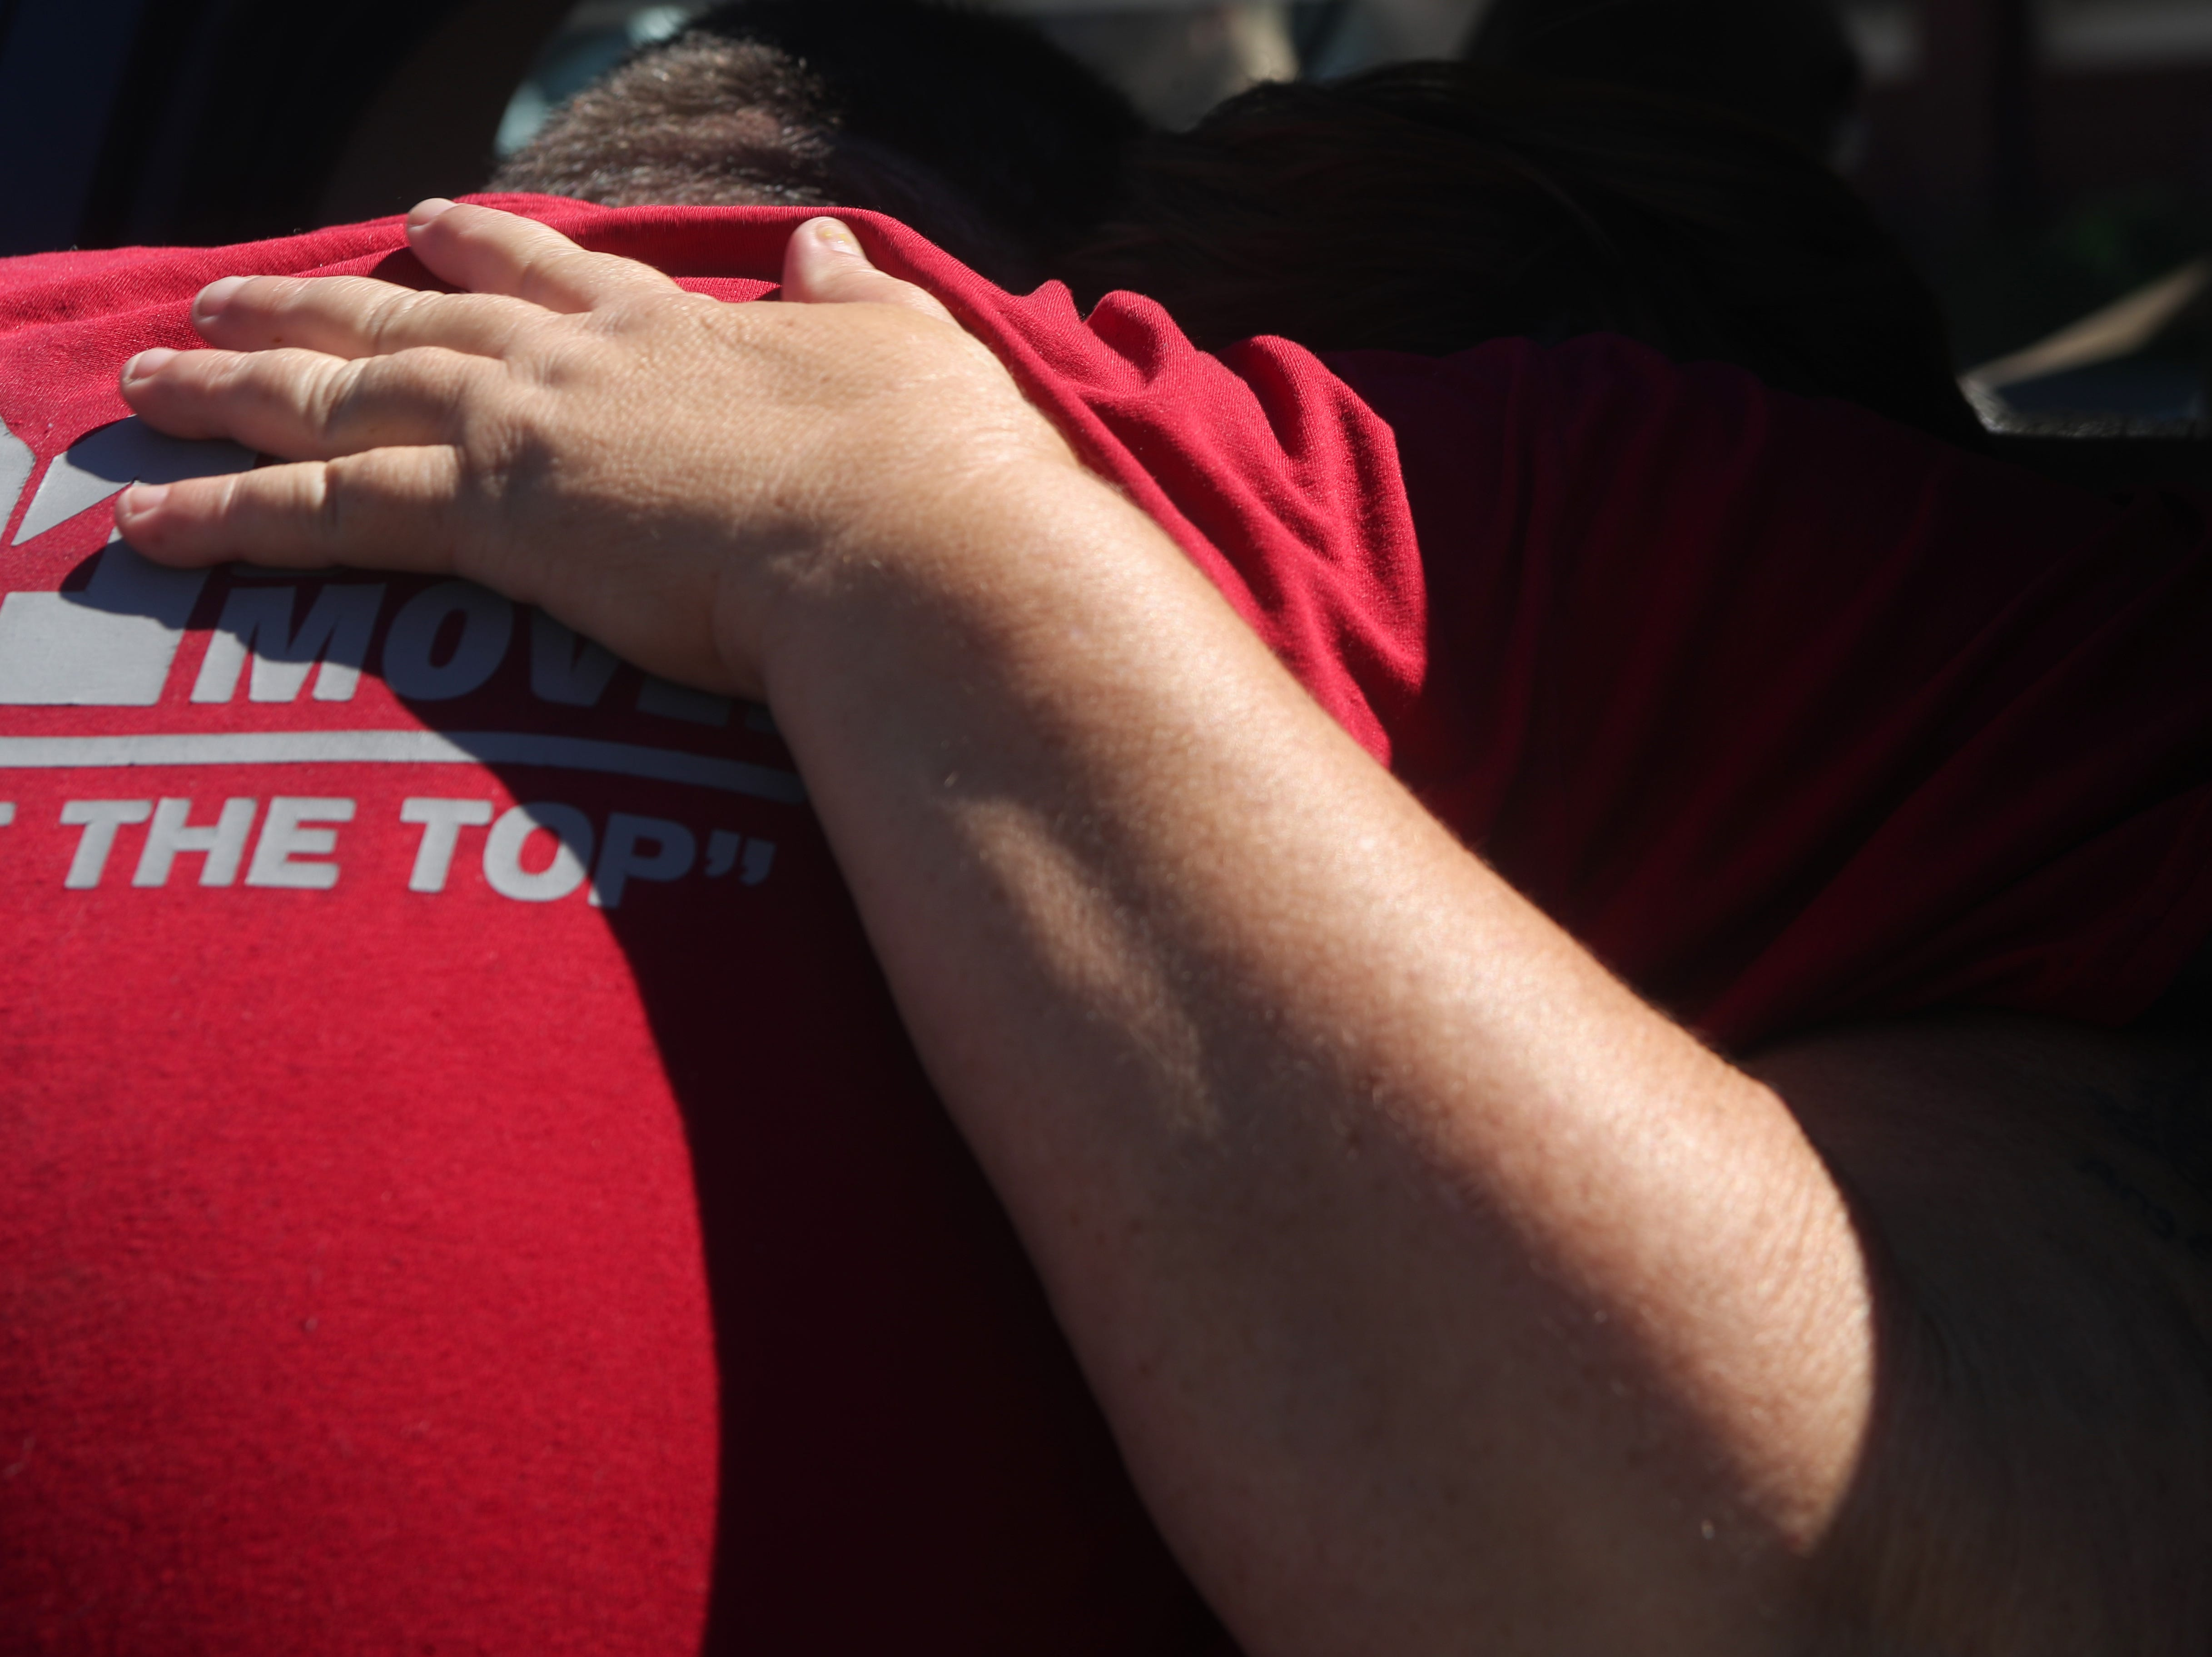 Kathy Drew hugs her son, an inmate at the Liberty County jail, as he works handing out American Red Cross blankets and cots at the Liberty County Emergency Operations Center in Bristol, Fla. in the aftermath of Hurricane Michael Friday, Oct. 12, 2018.